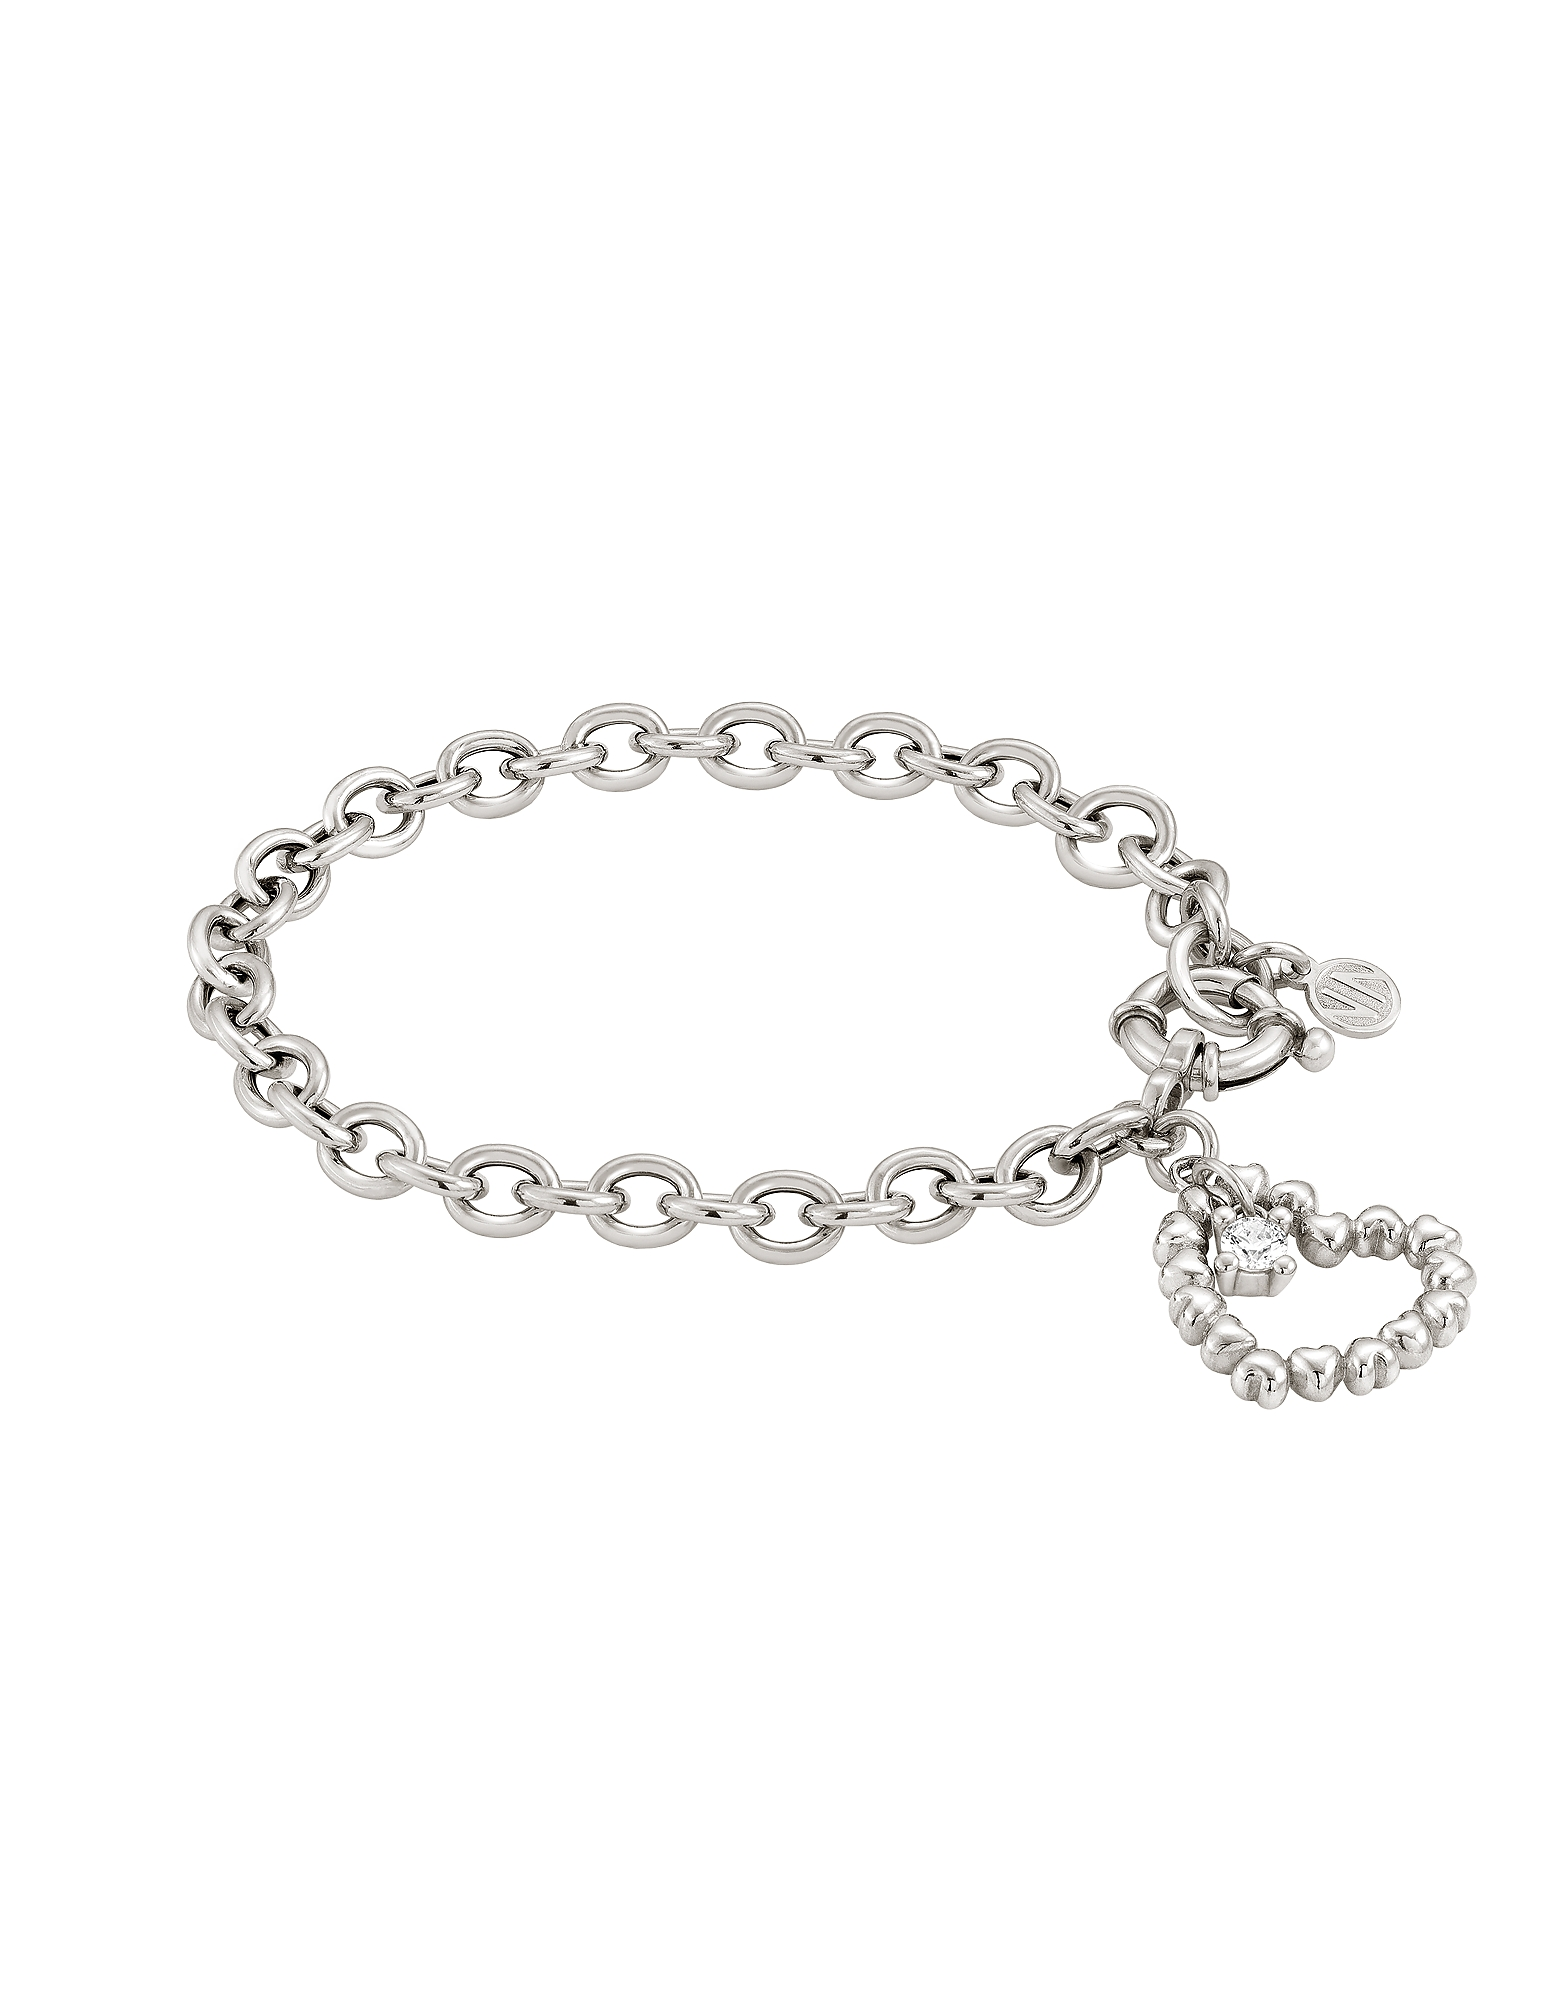 Nomination  Bracelets Rock in Love Bracelet w/Heart Pendant